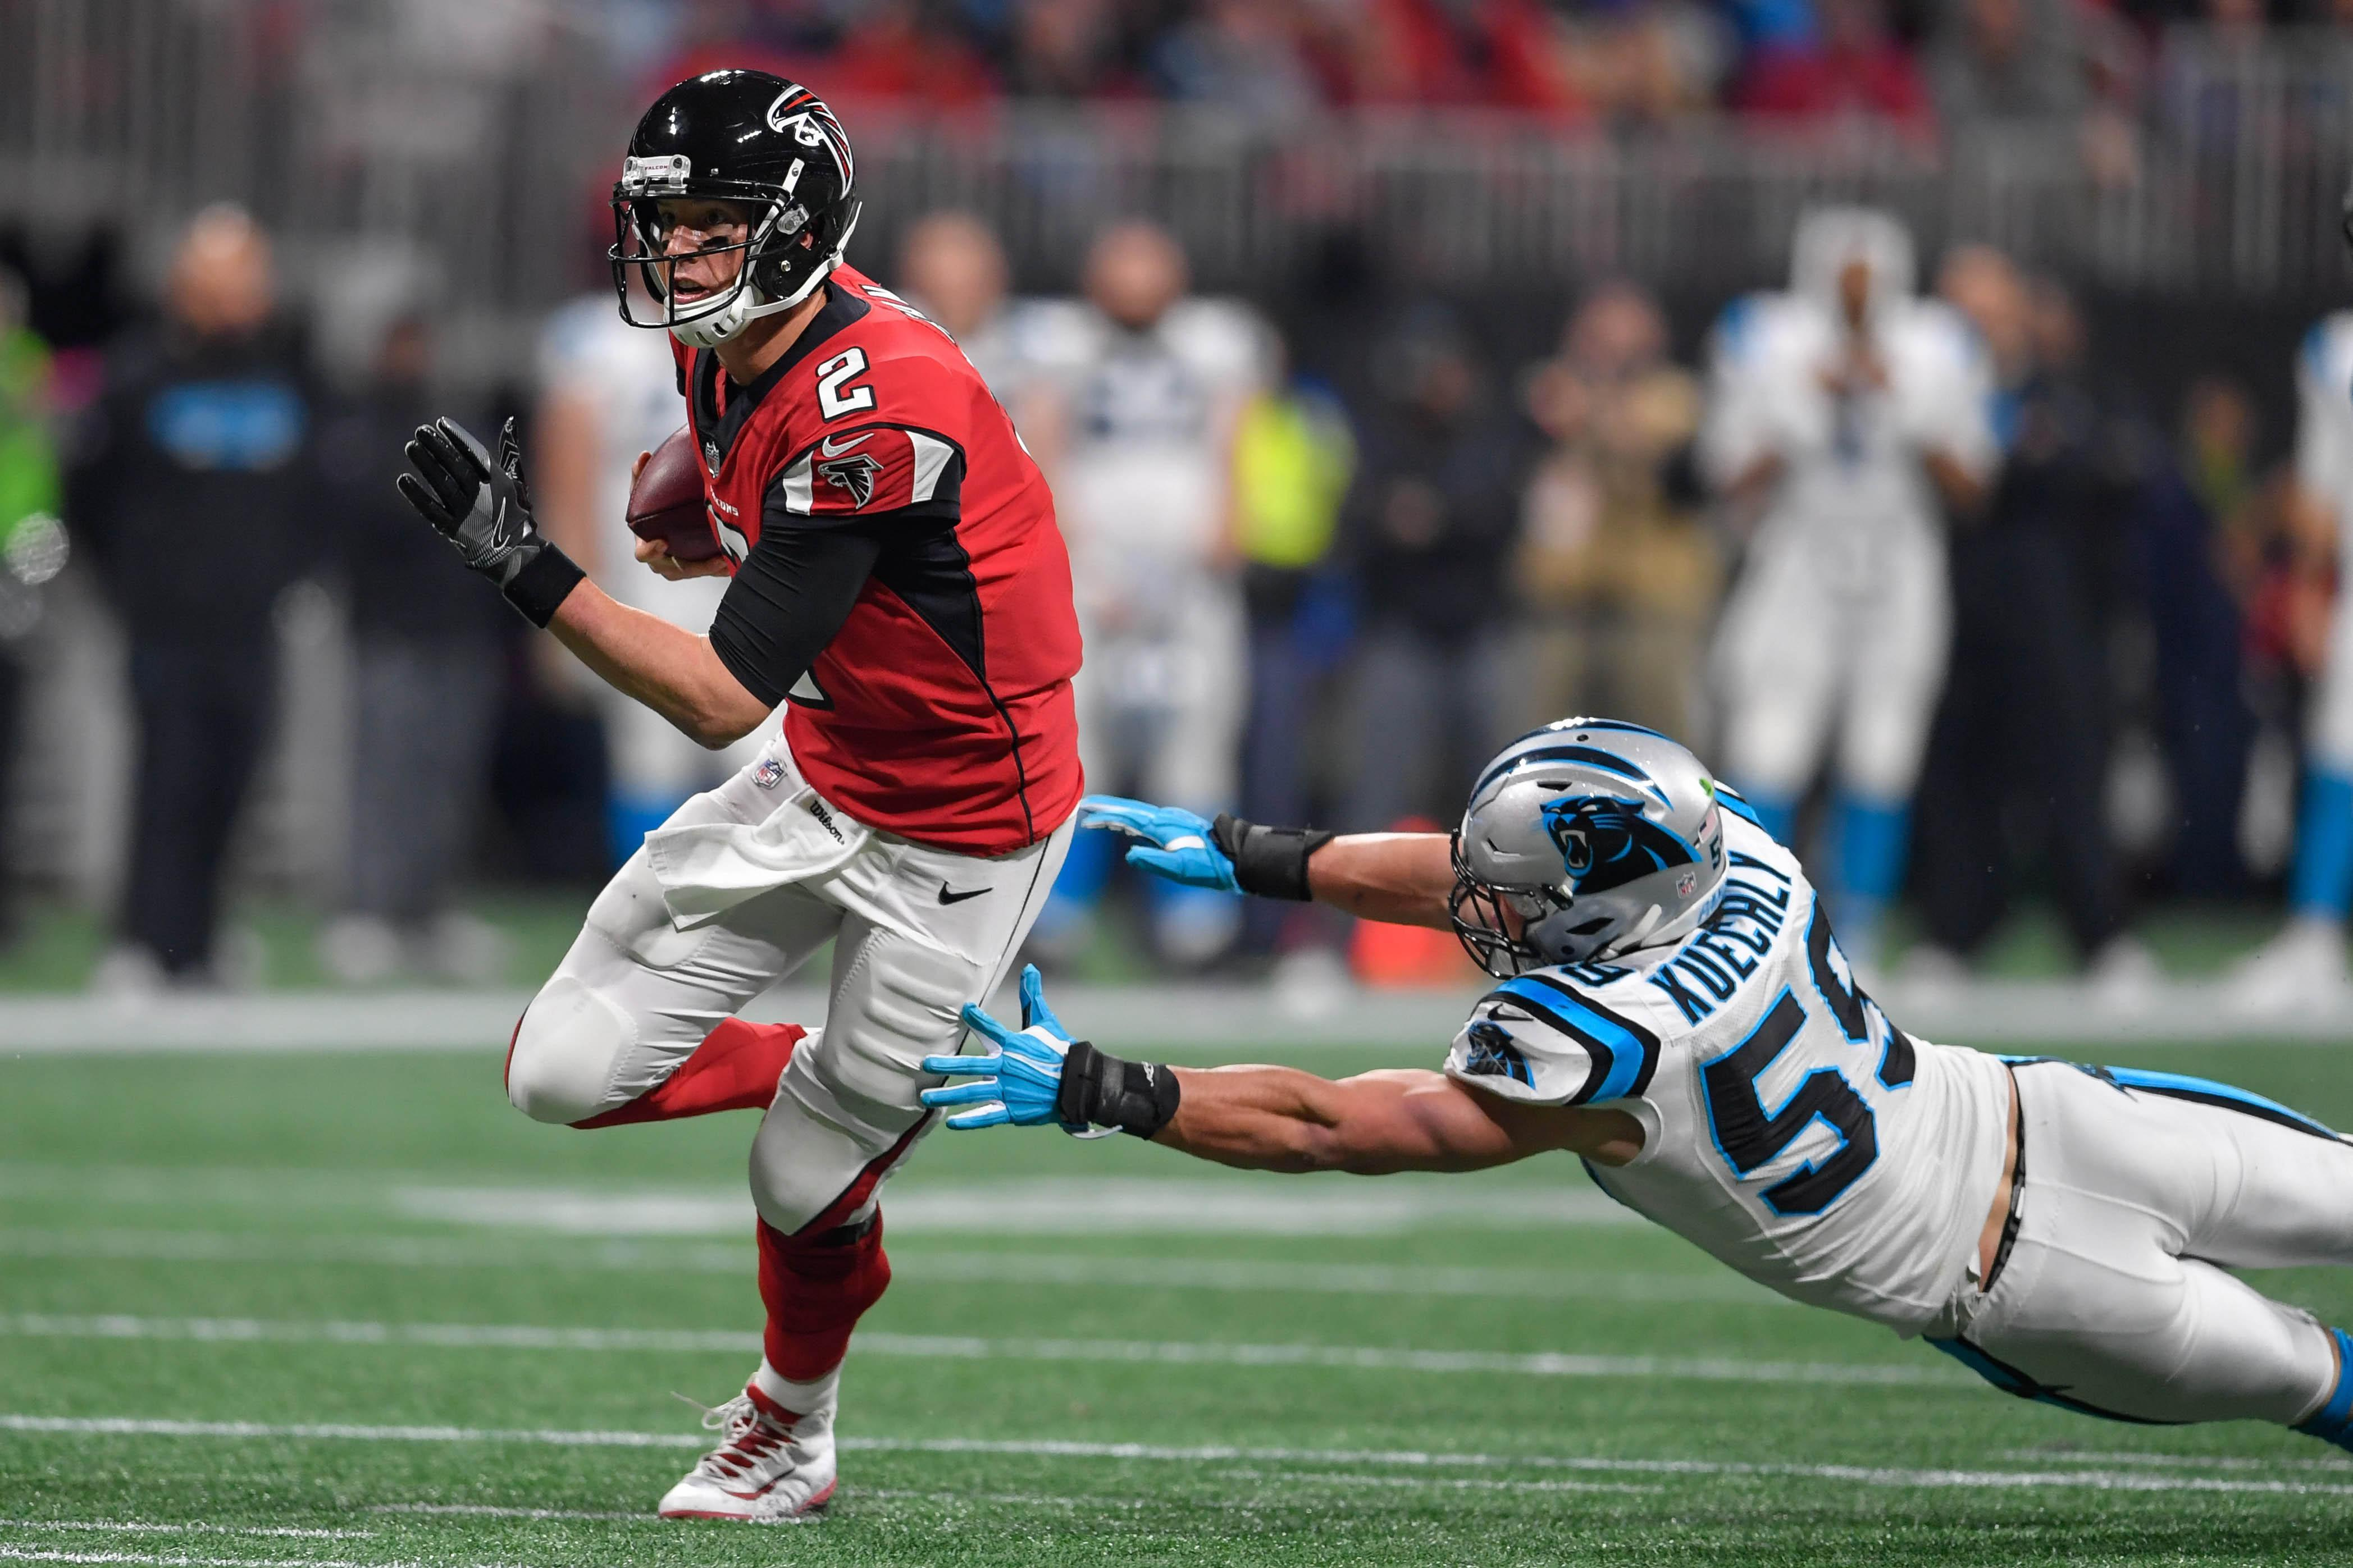 Atlanta beat Carolina in week 17 to secure the final Wild Card spot in the NFC play-offs